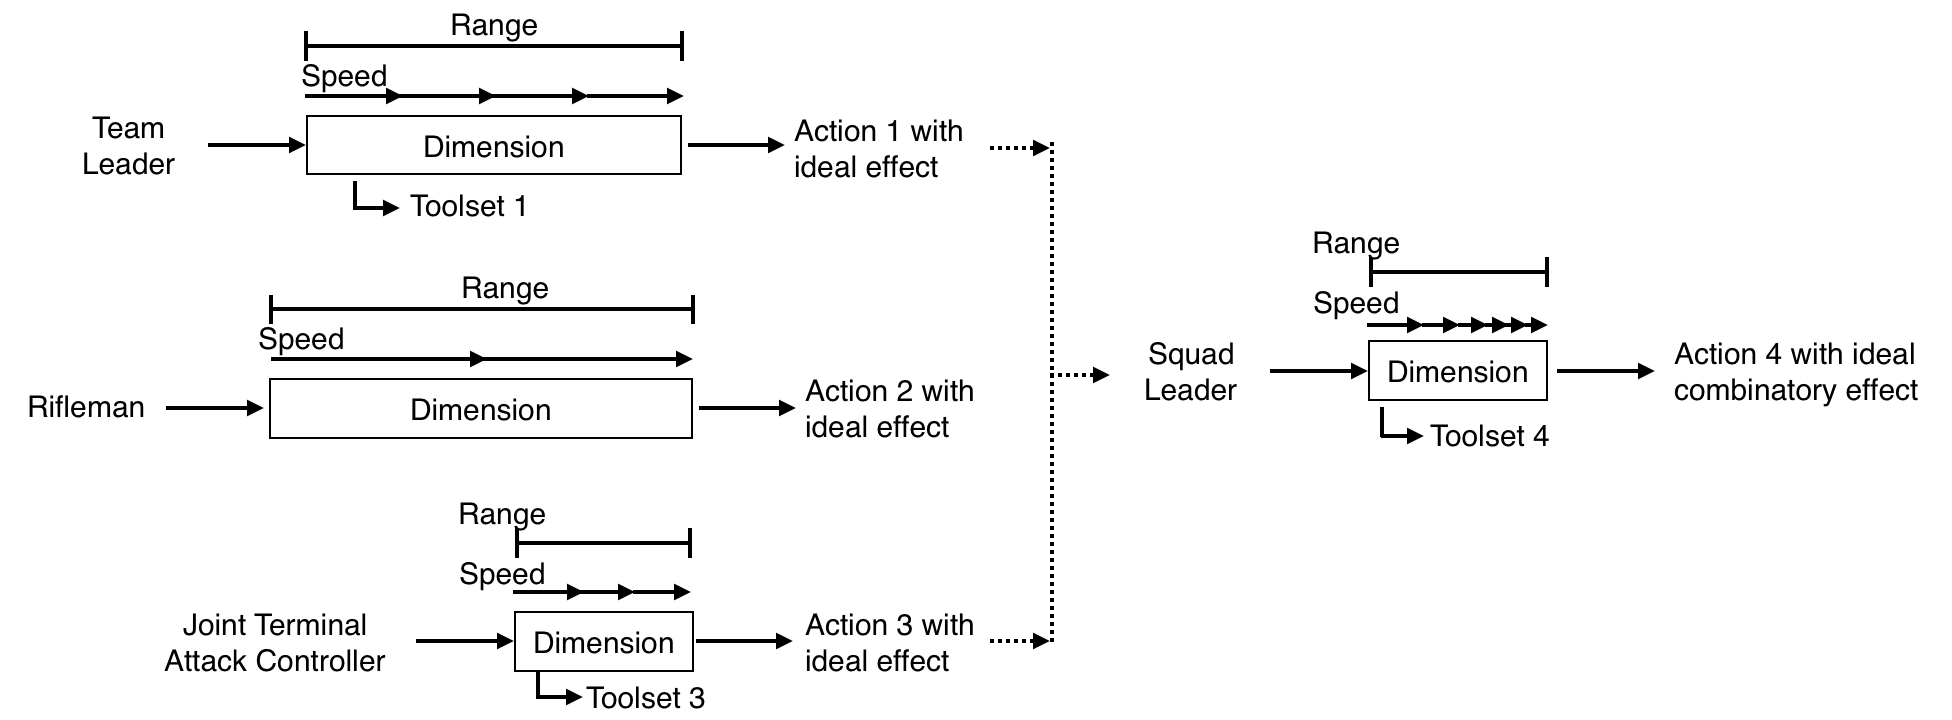 An illustration of the ideal condition where individual actions fine-tuned to local conditions, thus leading to the highest level of combinatory effect possible. The same type of analysis could be extended to the operational and strategic levels.